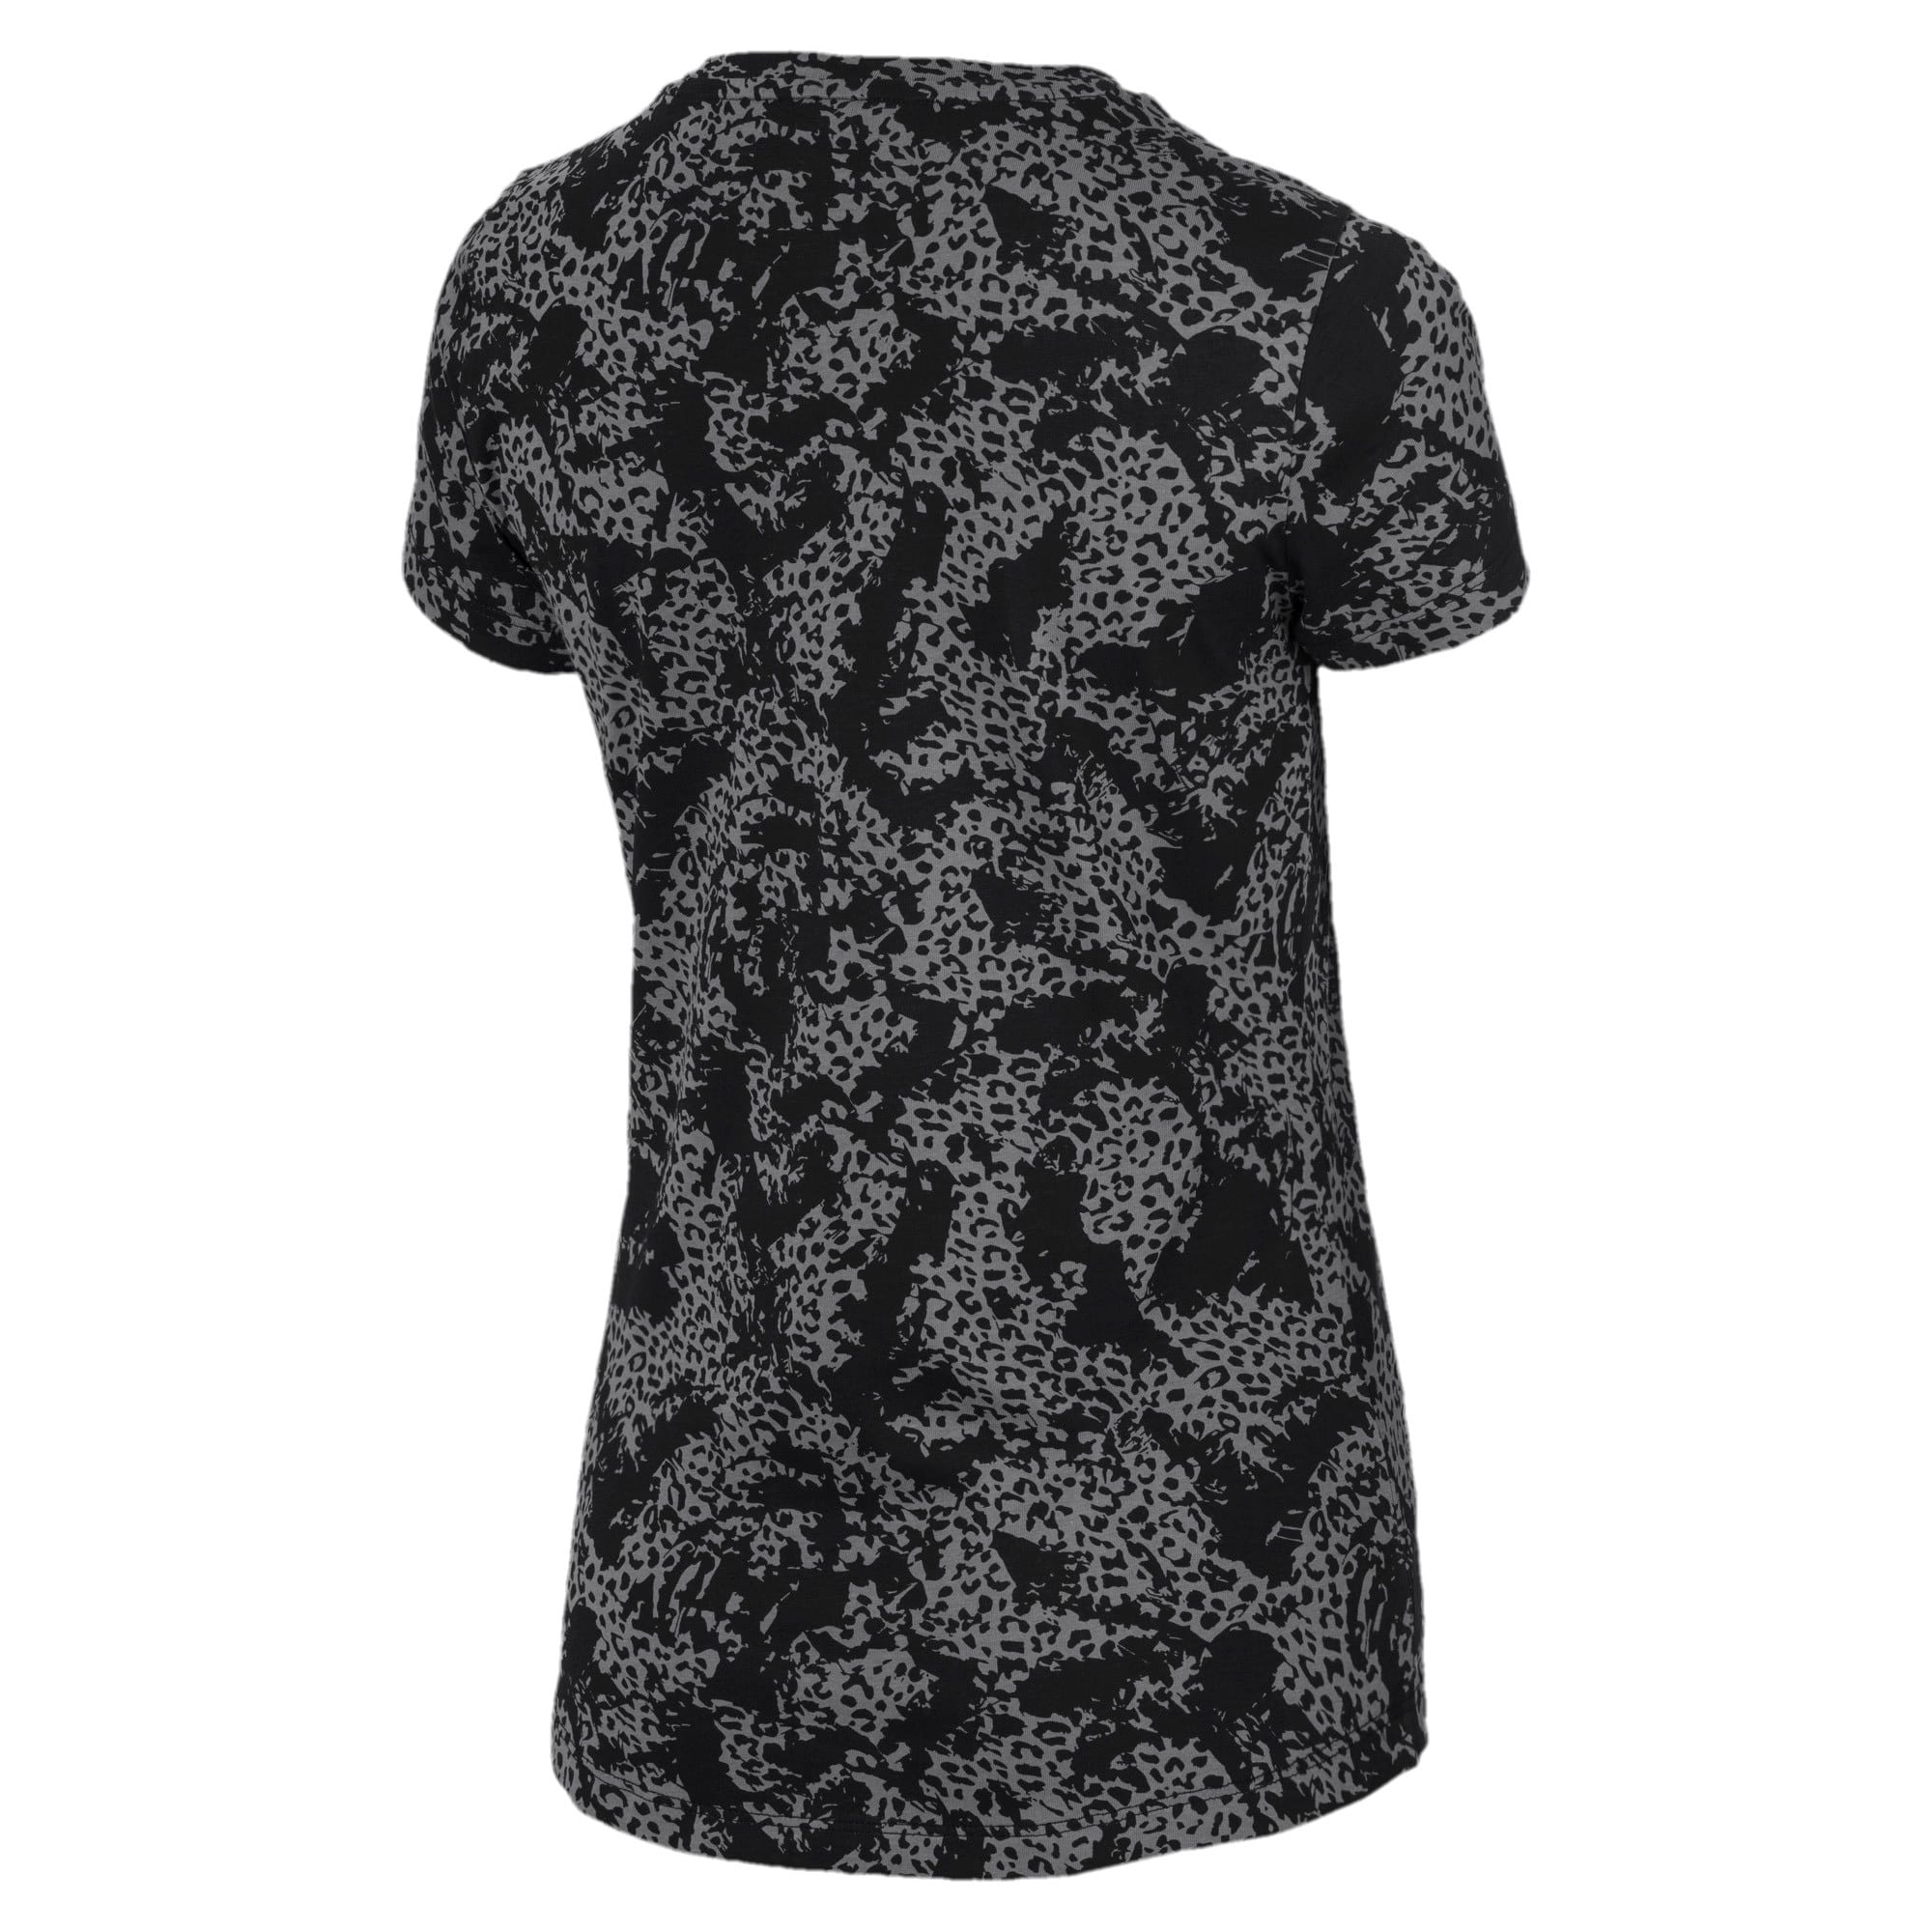 Thumbnail 5 of Elevated Essentials All-Over Print Women's Tee, Puma Black, medium-IND